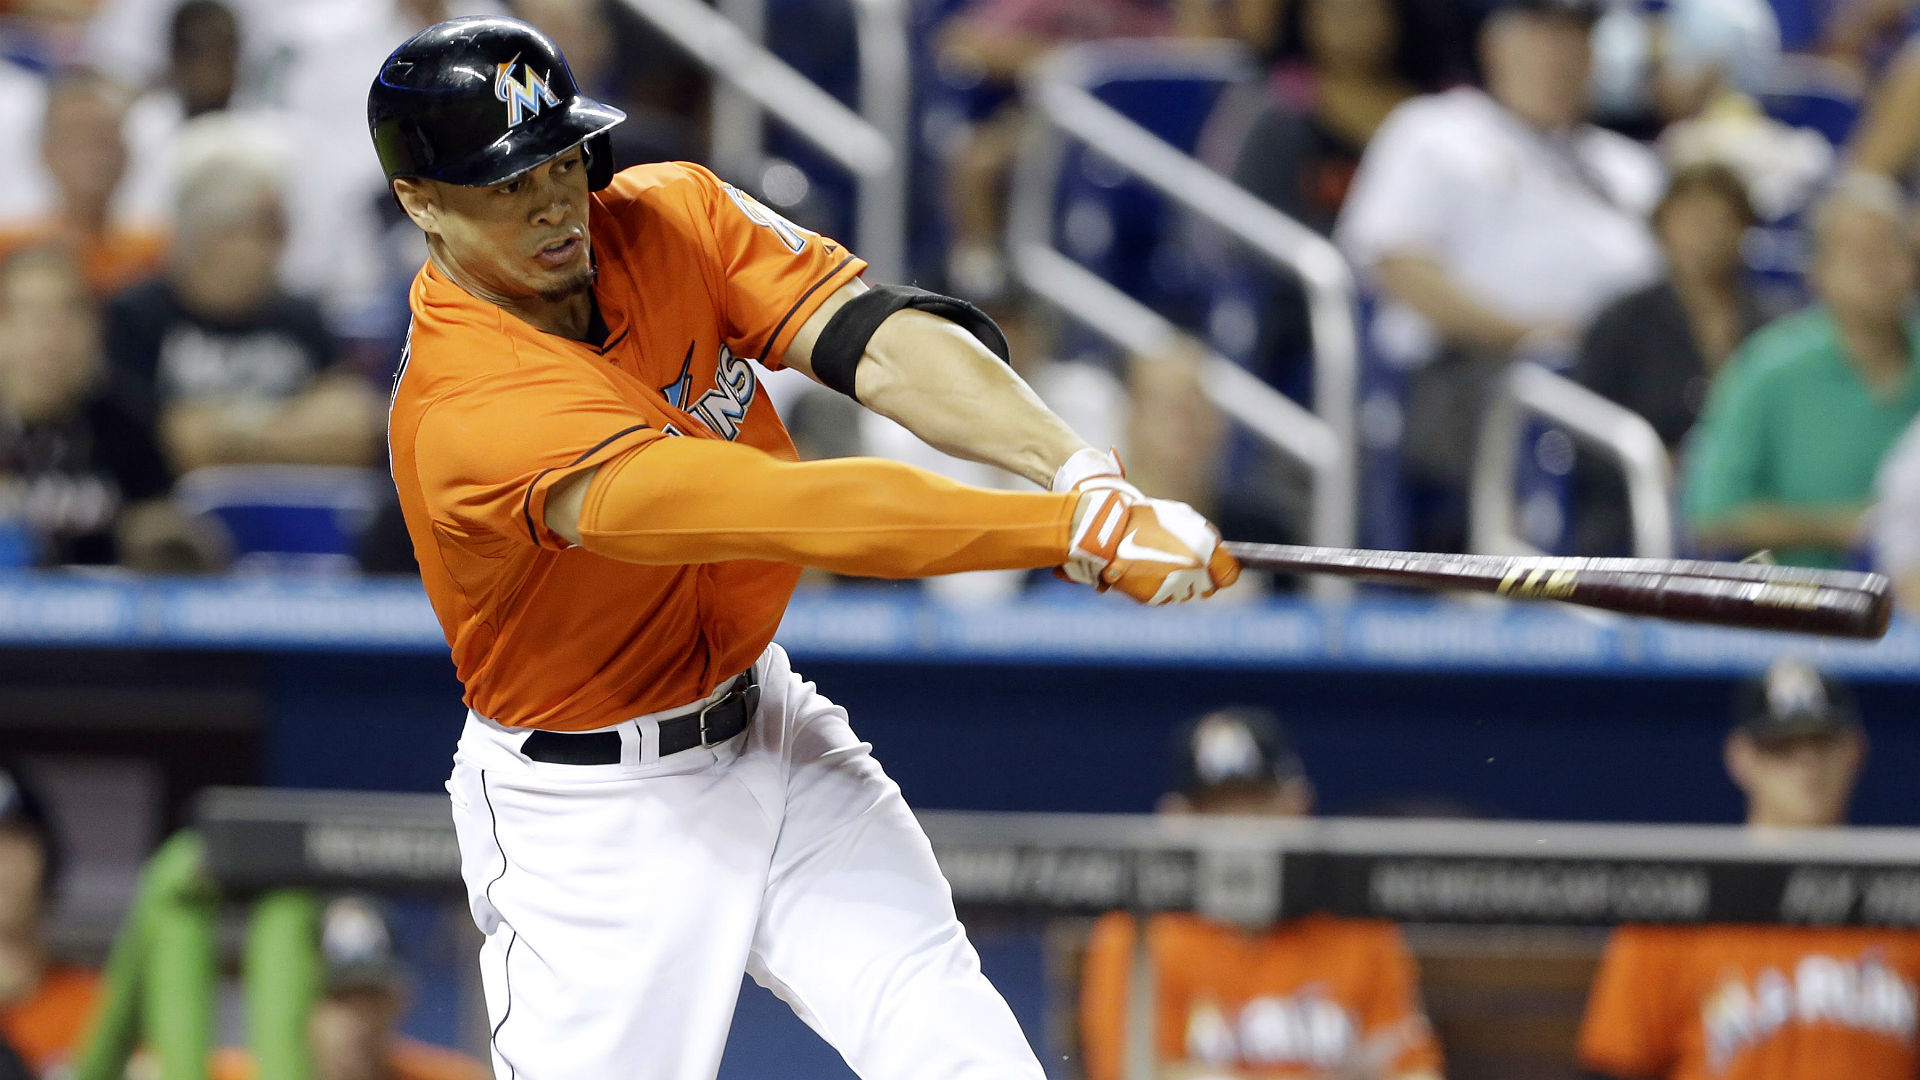 Fantasy baseball team report: Miami Marlins